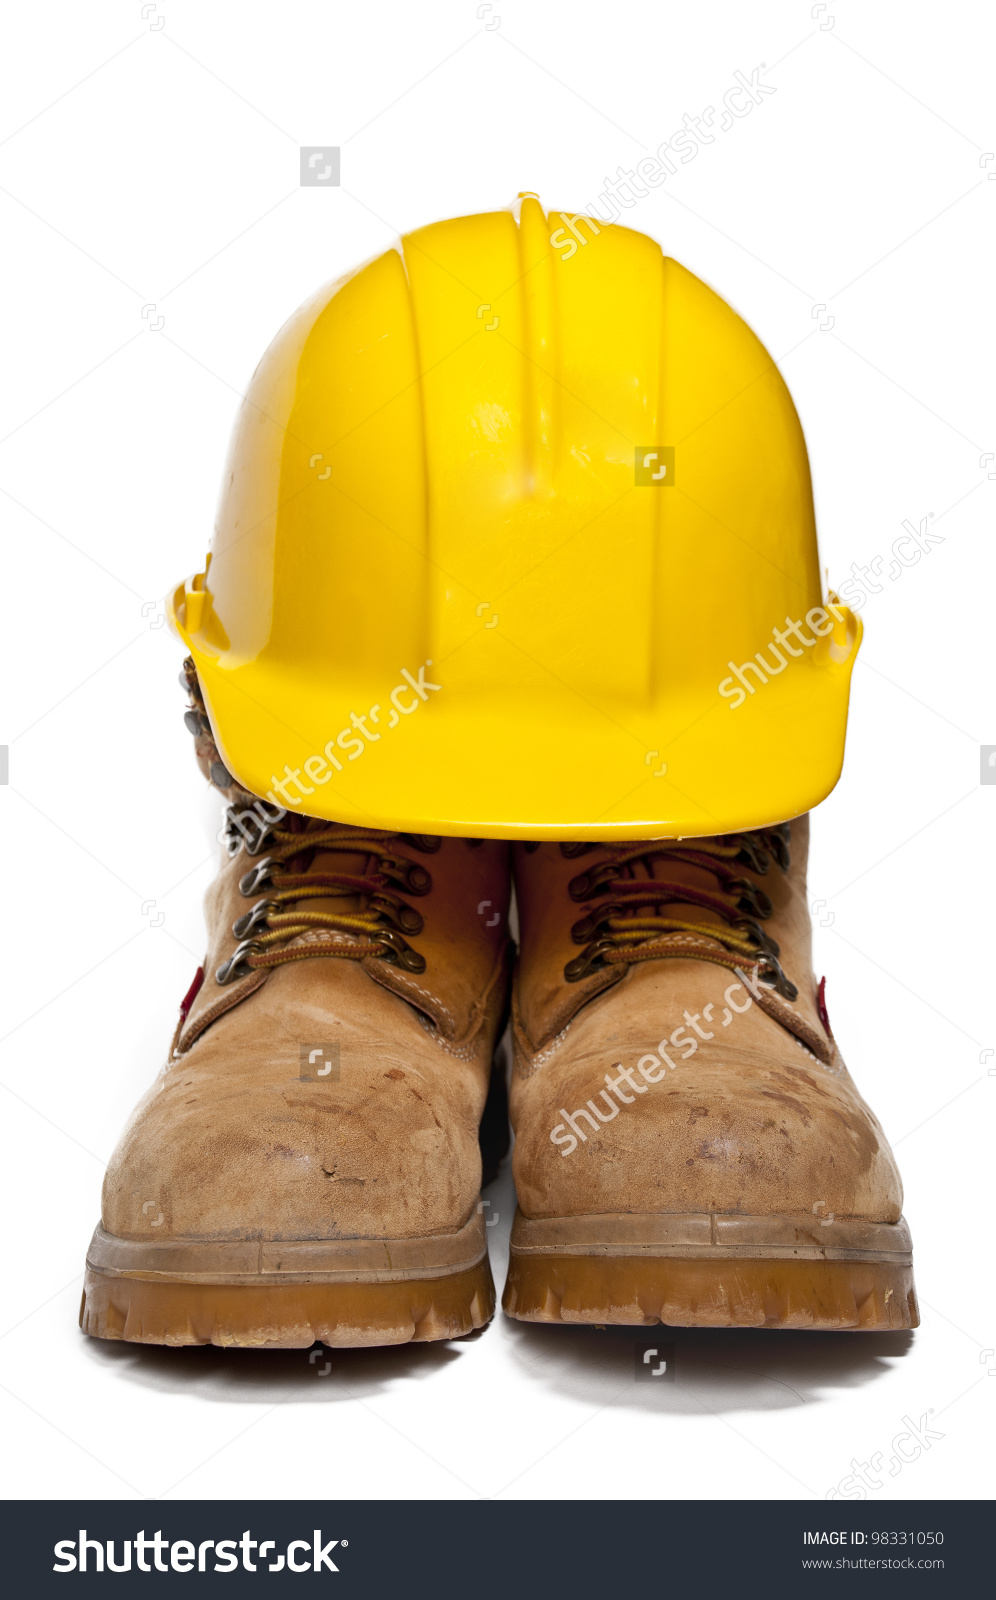 Construction Ppe Steel Toe Boots Yellow Stock Photo 98331050.